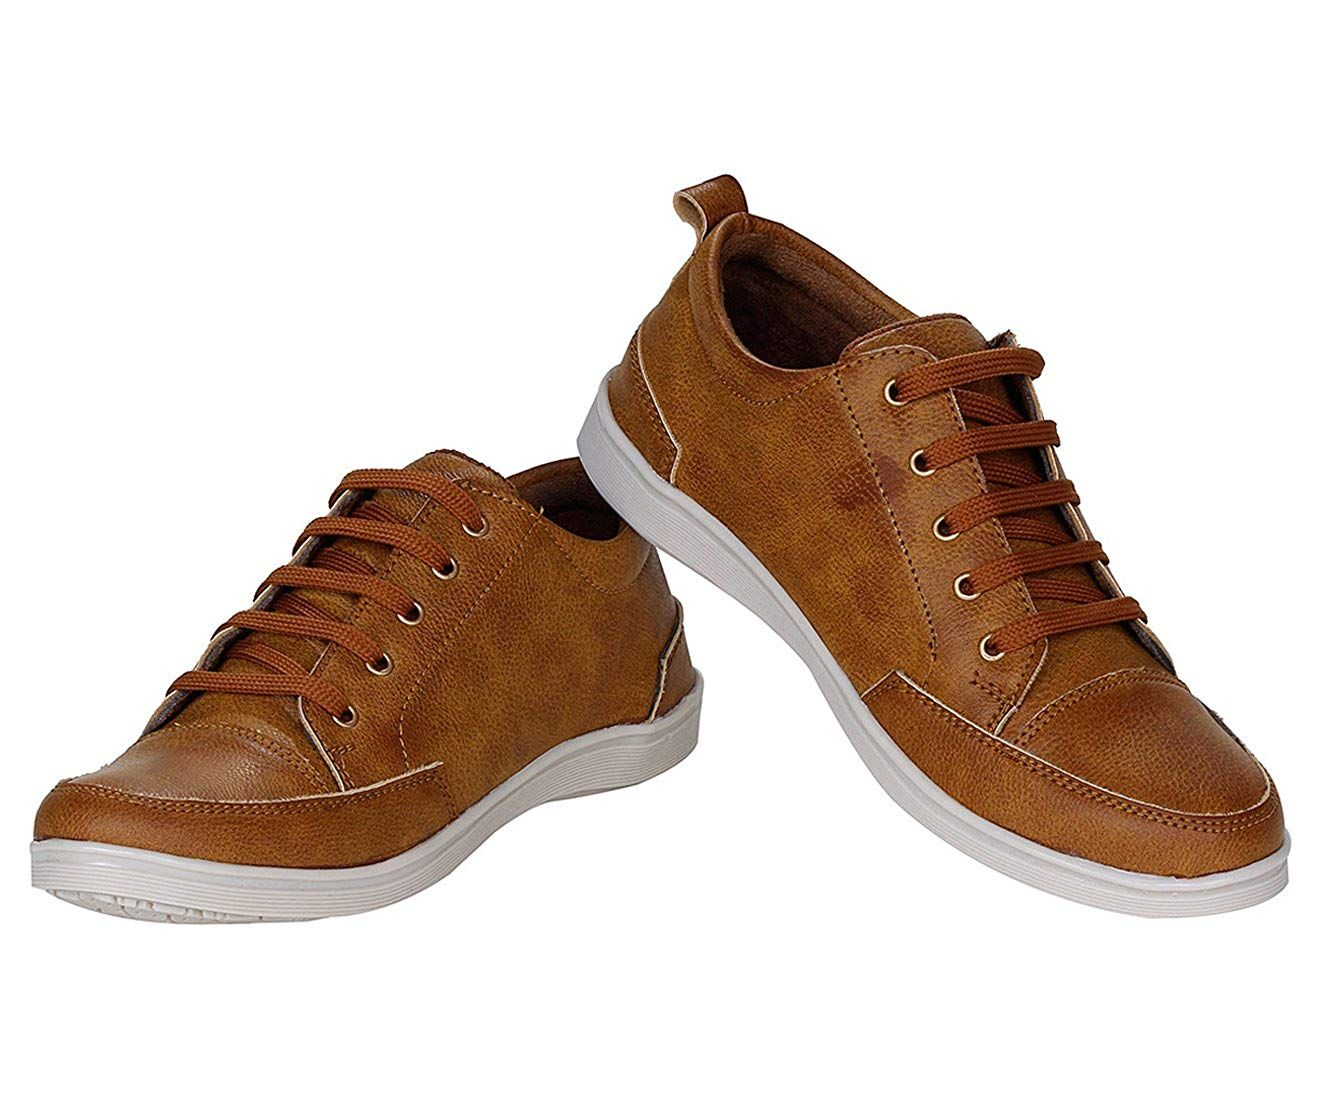 333165b0ef14c Kraasa Men's Faux Leather Sneaker: Buy Online at Low Prices in India ...